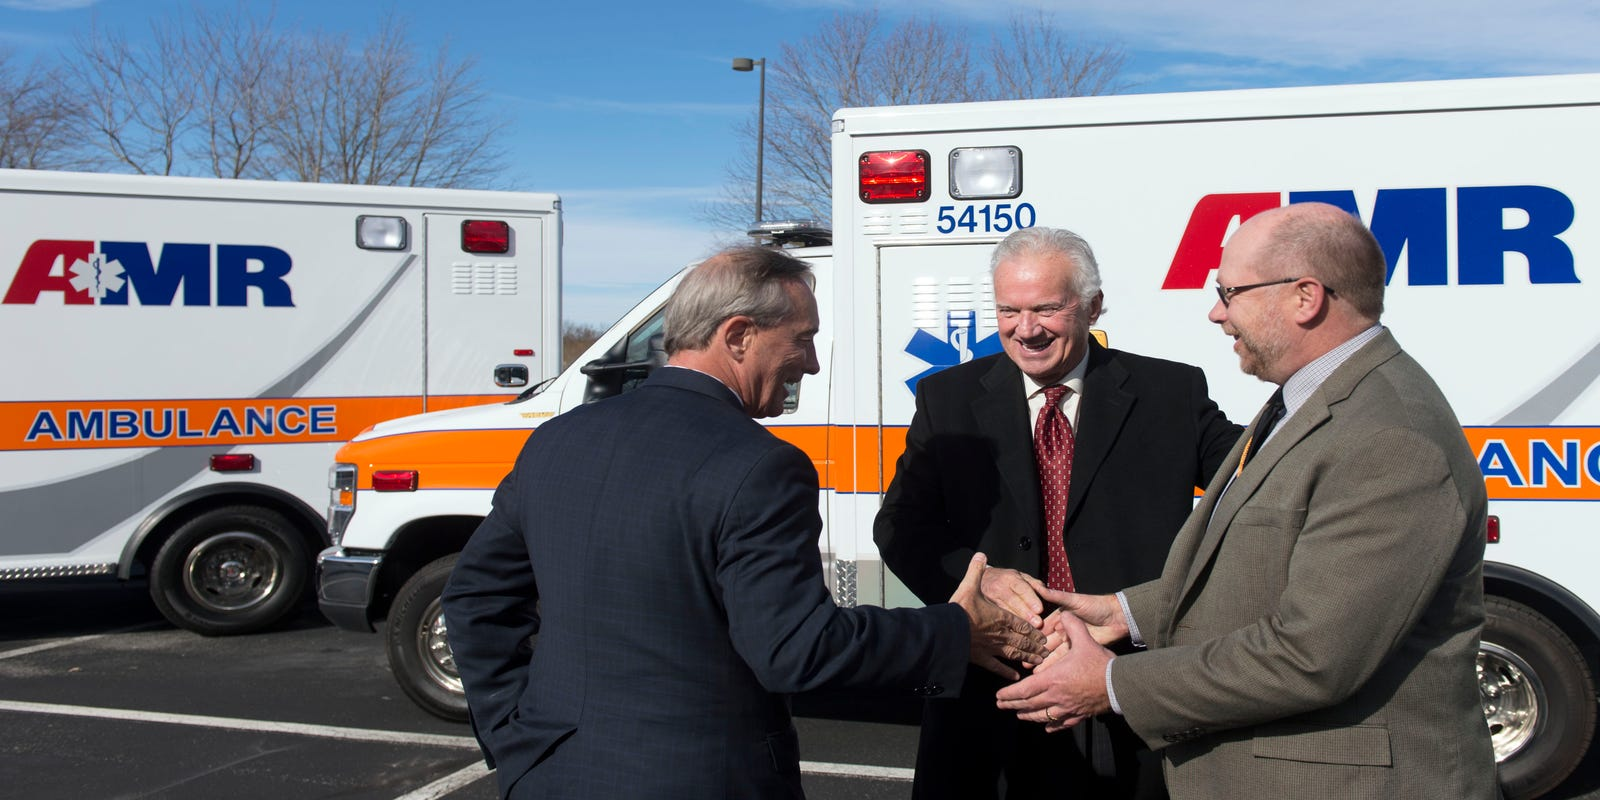 Knox County approves ambulance contract with AMR